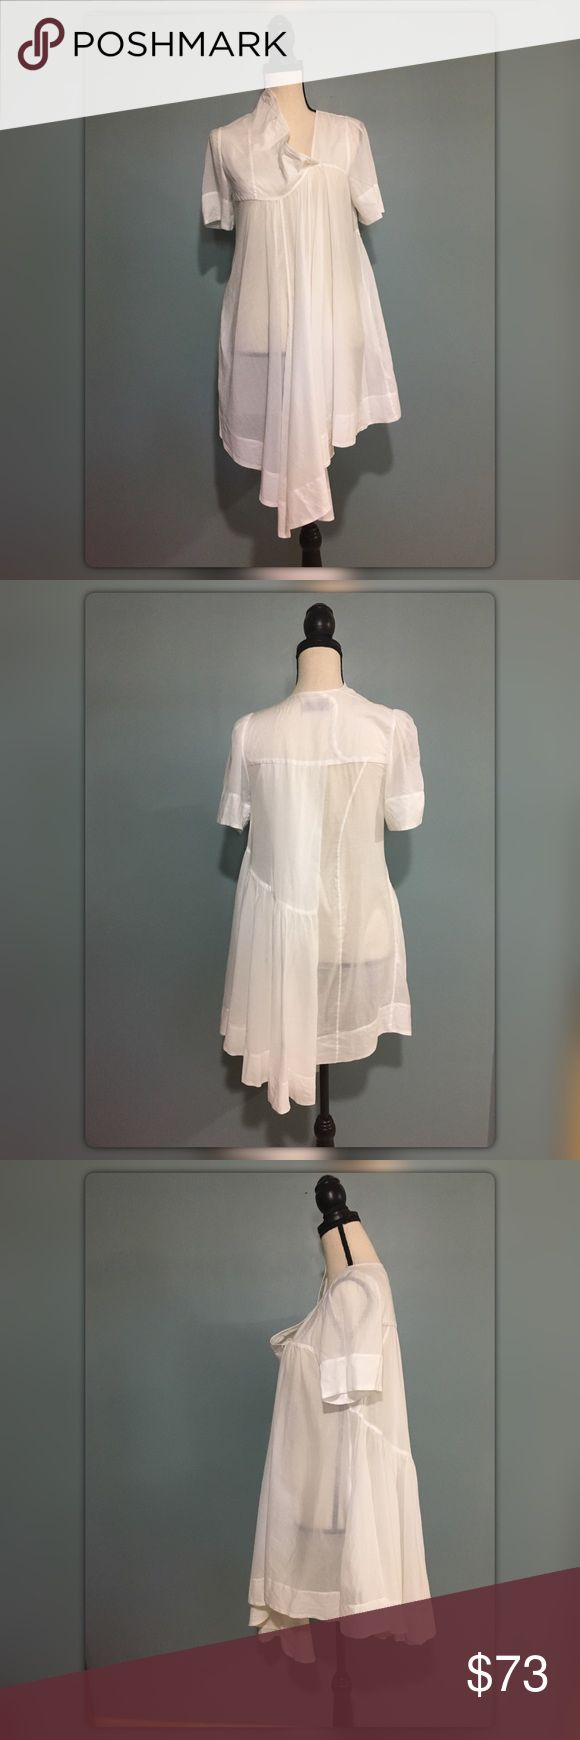 Allsaints spitafields UK sz 8/USA sz 4 agena dress AllSaints summer AGENA dress in white. Dress is very interesting style, with asymmetric hem, with asymmetric angled V-neck and faux button holes. Made of fine semi sheer cotton material (light & floaty with short sleeves). Dress also has two side seam pockets. Great condition, no stains, no pulls, no damage at all, worn not very much. Great for summer and going on vacations. Could also be worn as tunic since dress is on short side or as a…